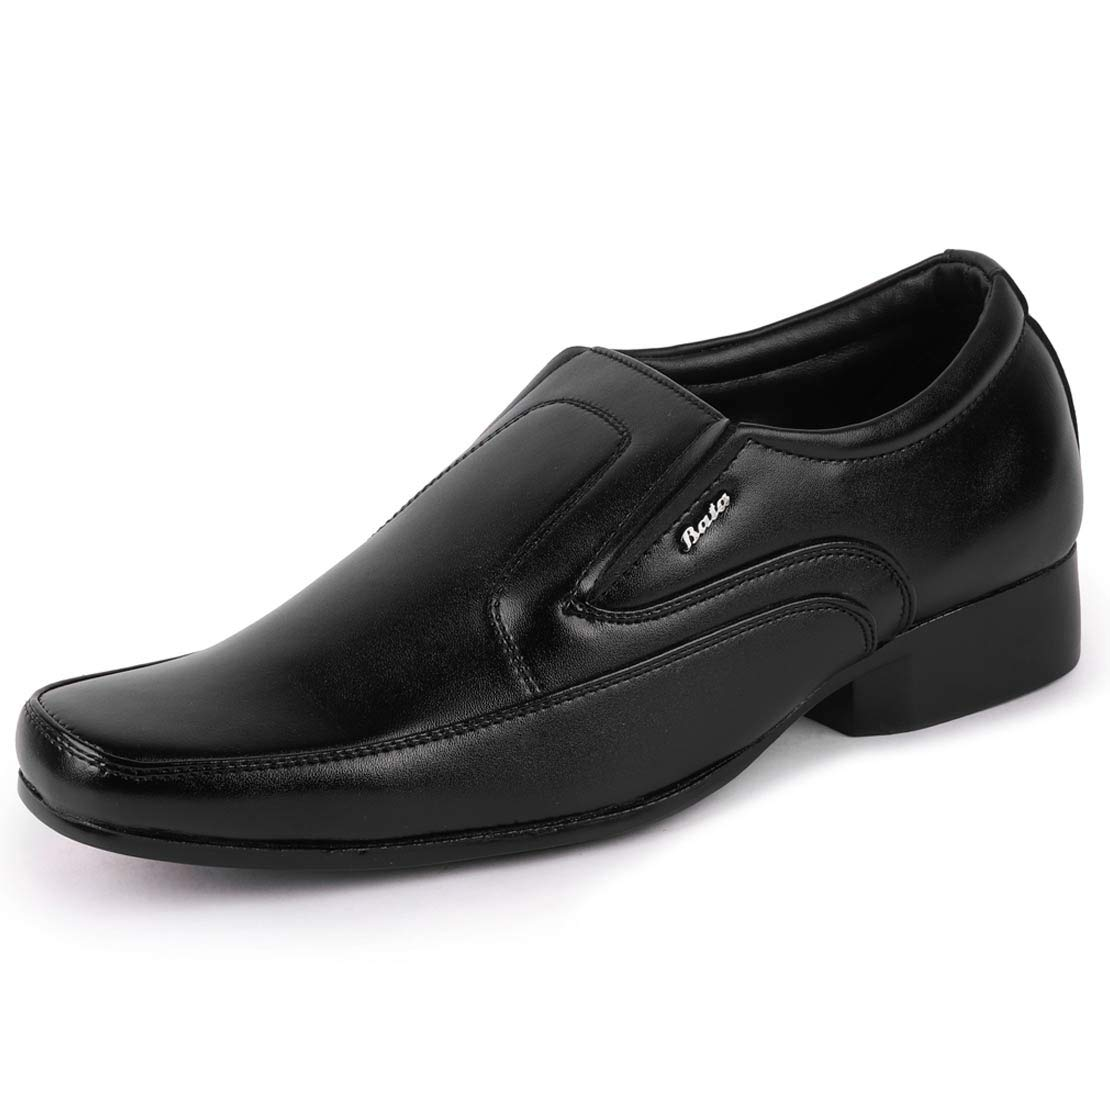 Bata formal shoes under 1000 black